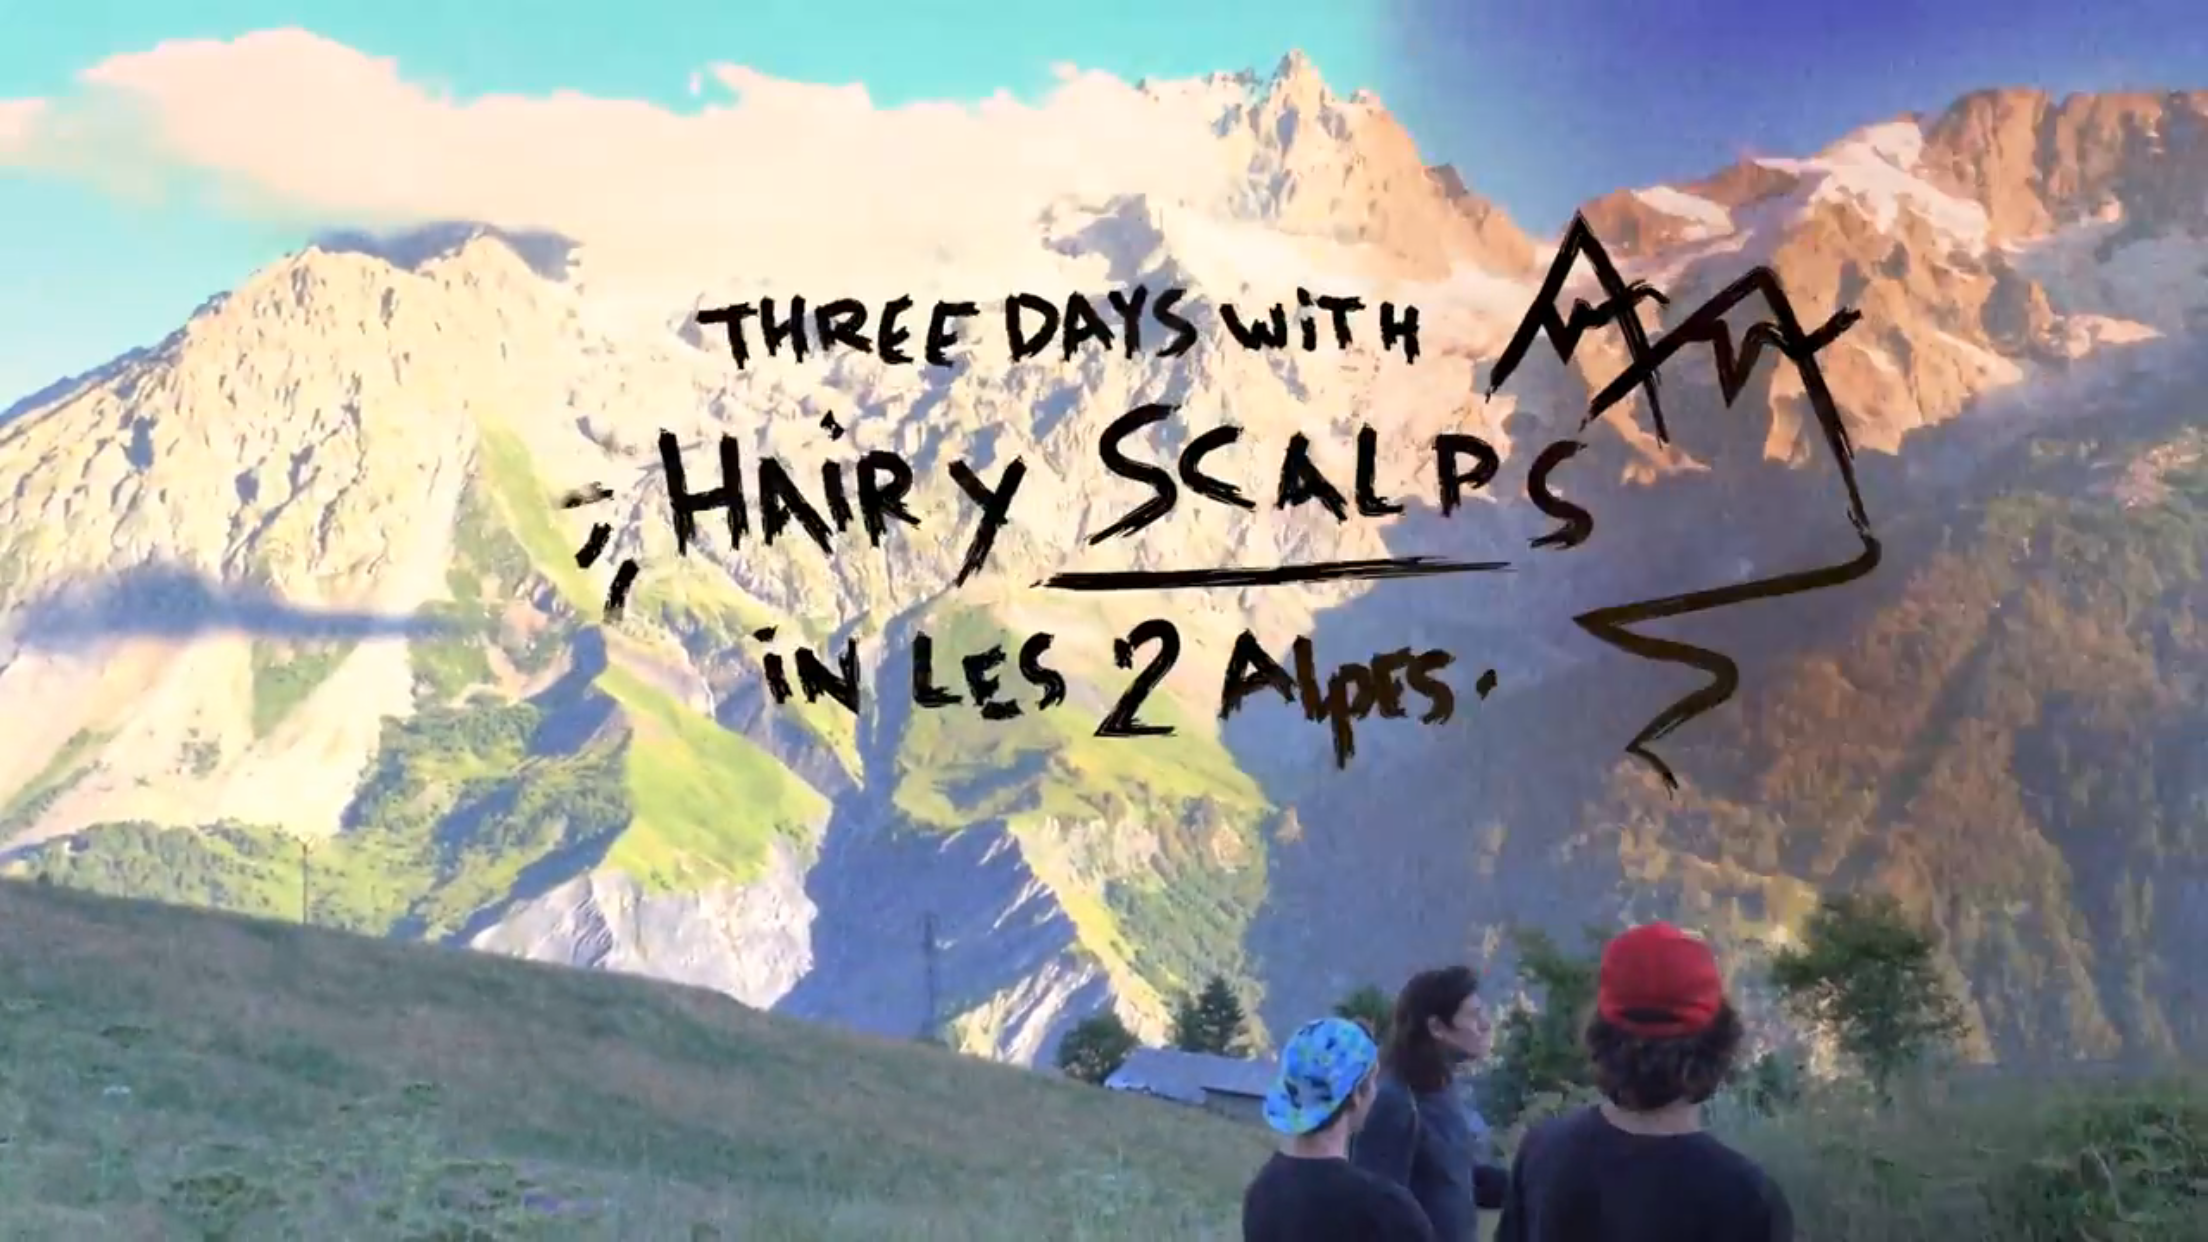 Hairy Scalps in Les Deux Alpes